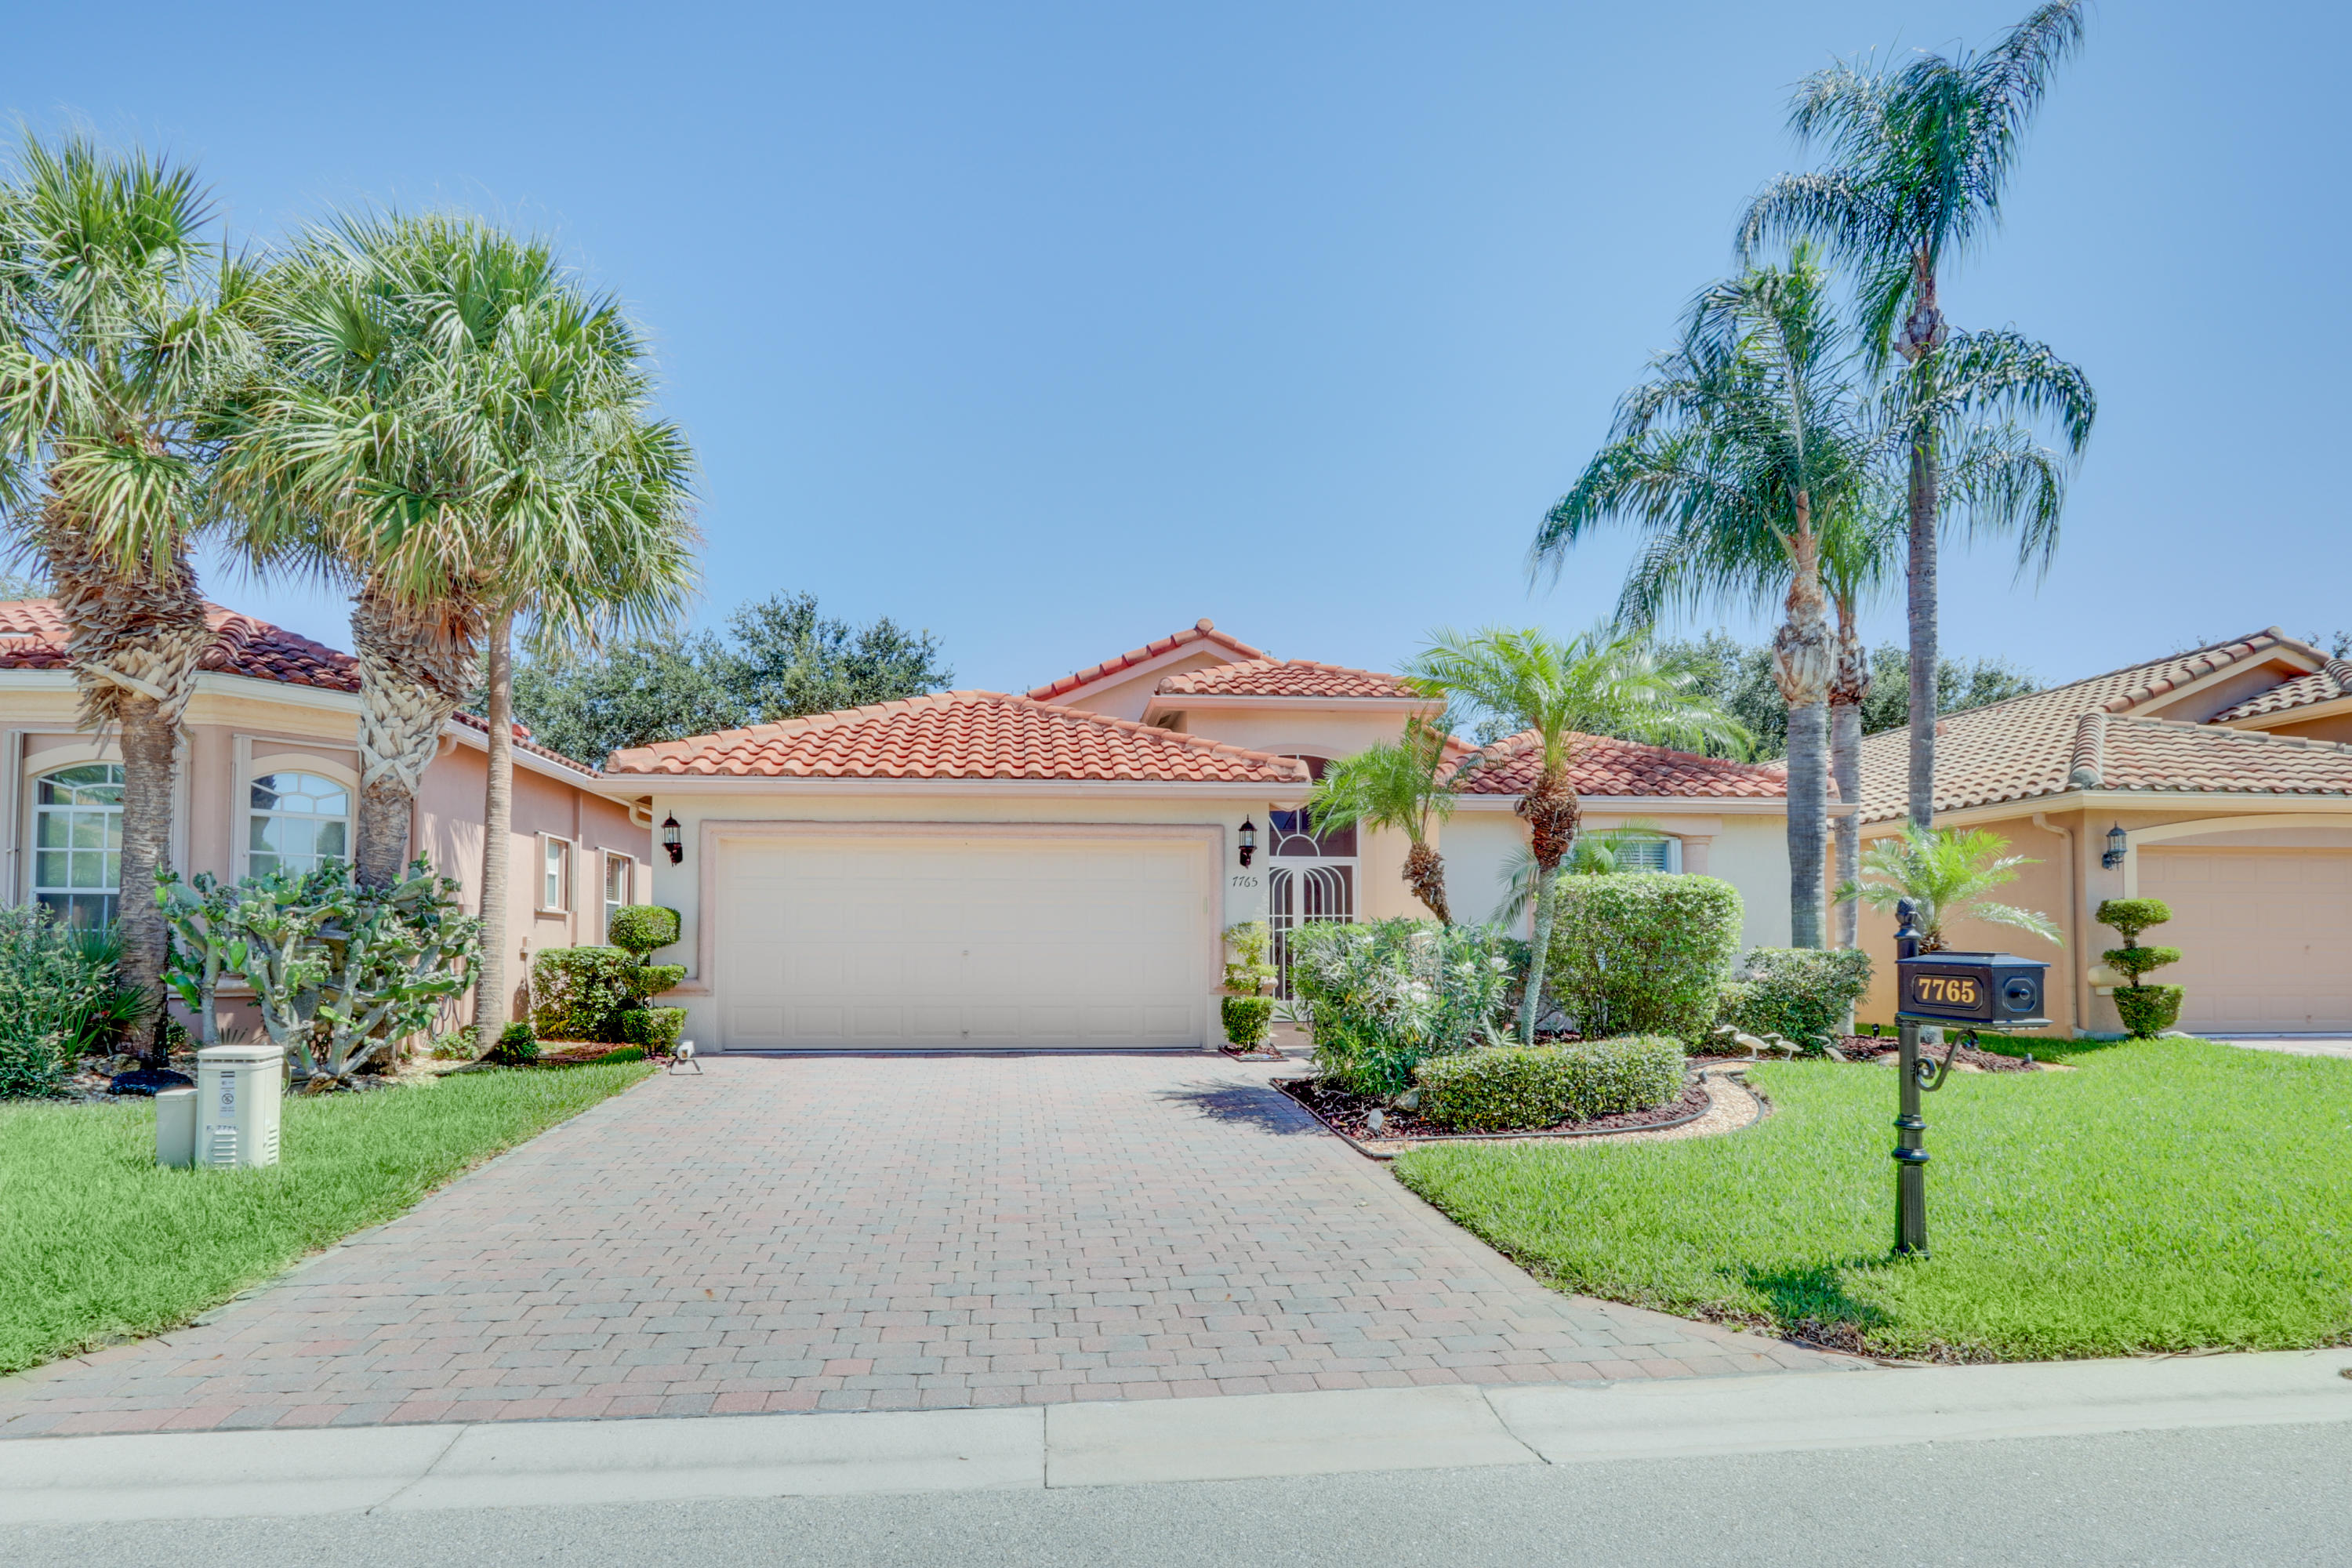 Photo of 7765 Trapani Lane, Boynton Beach, FL 33472